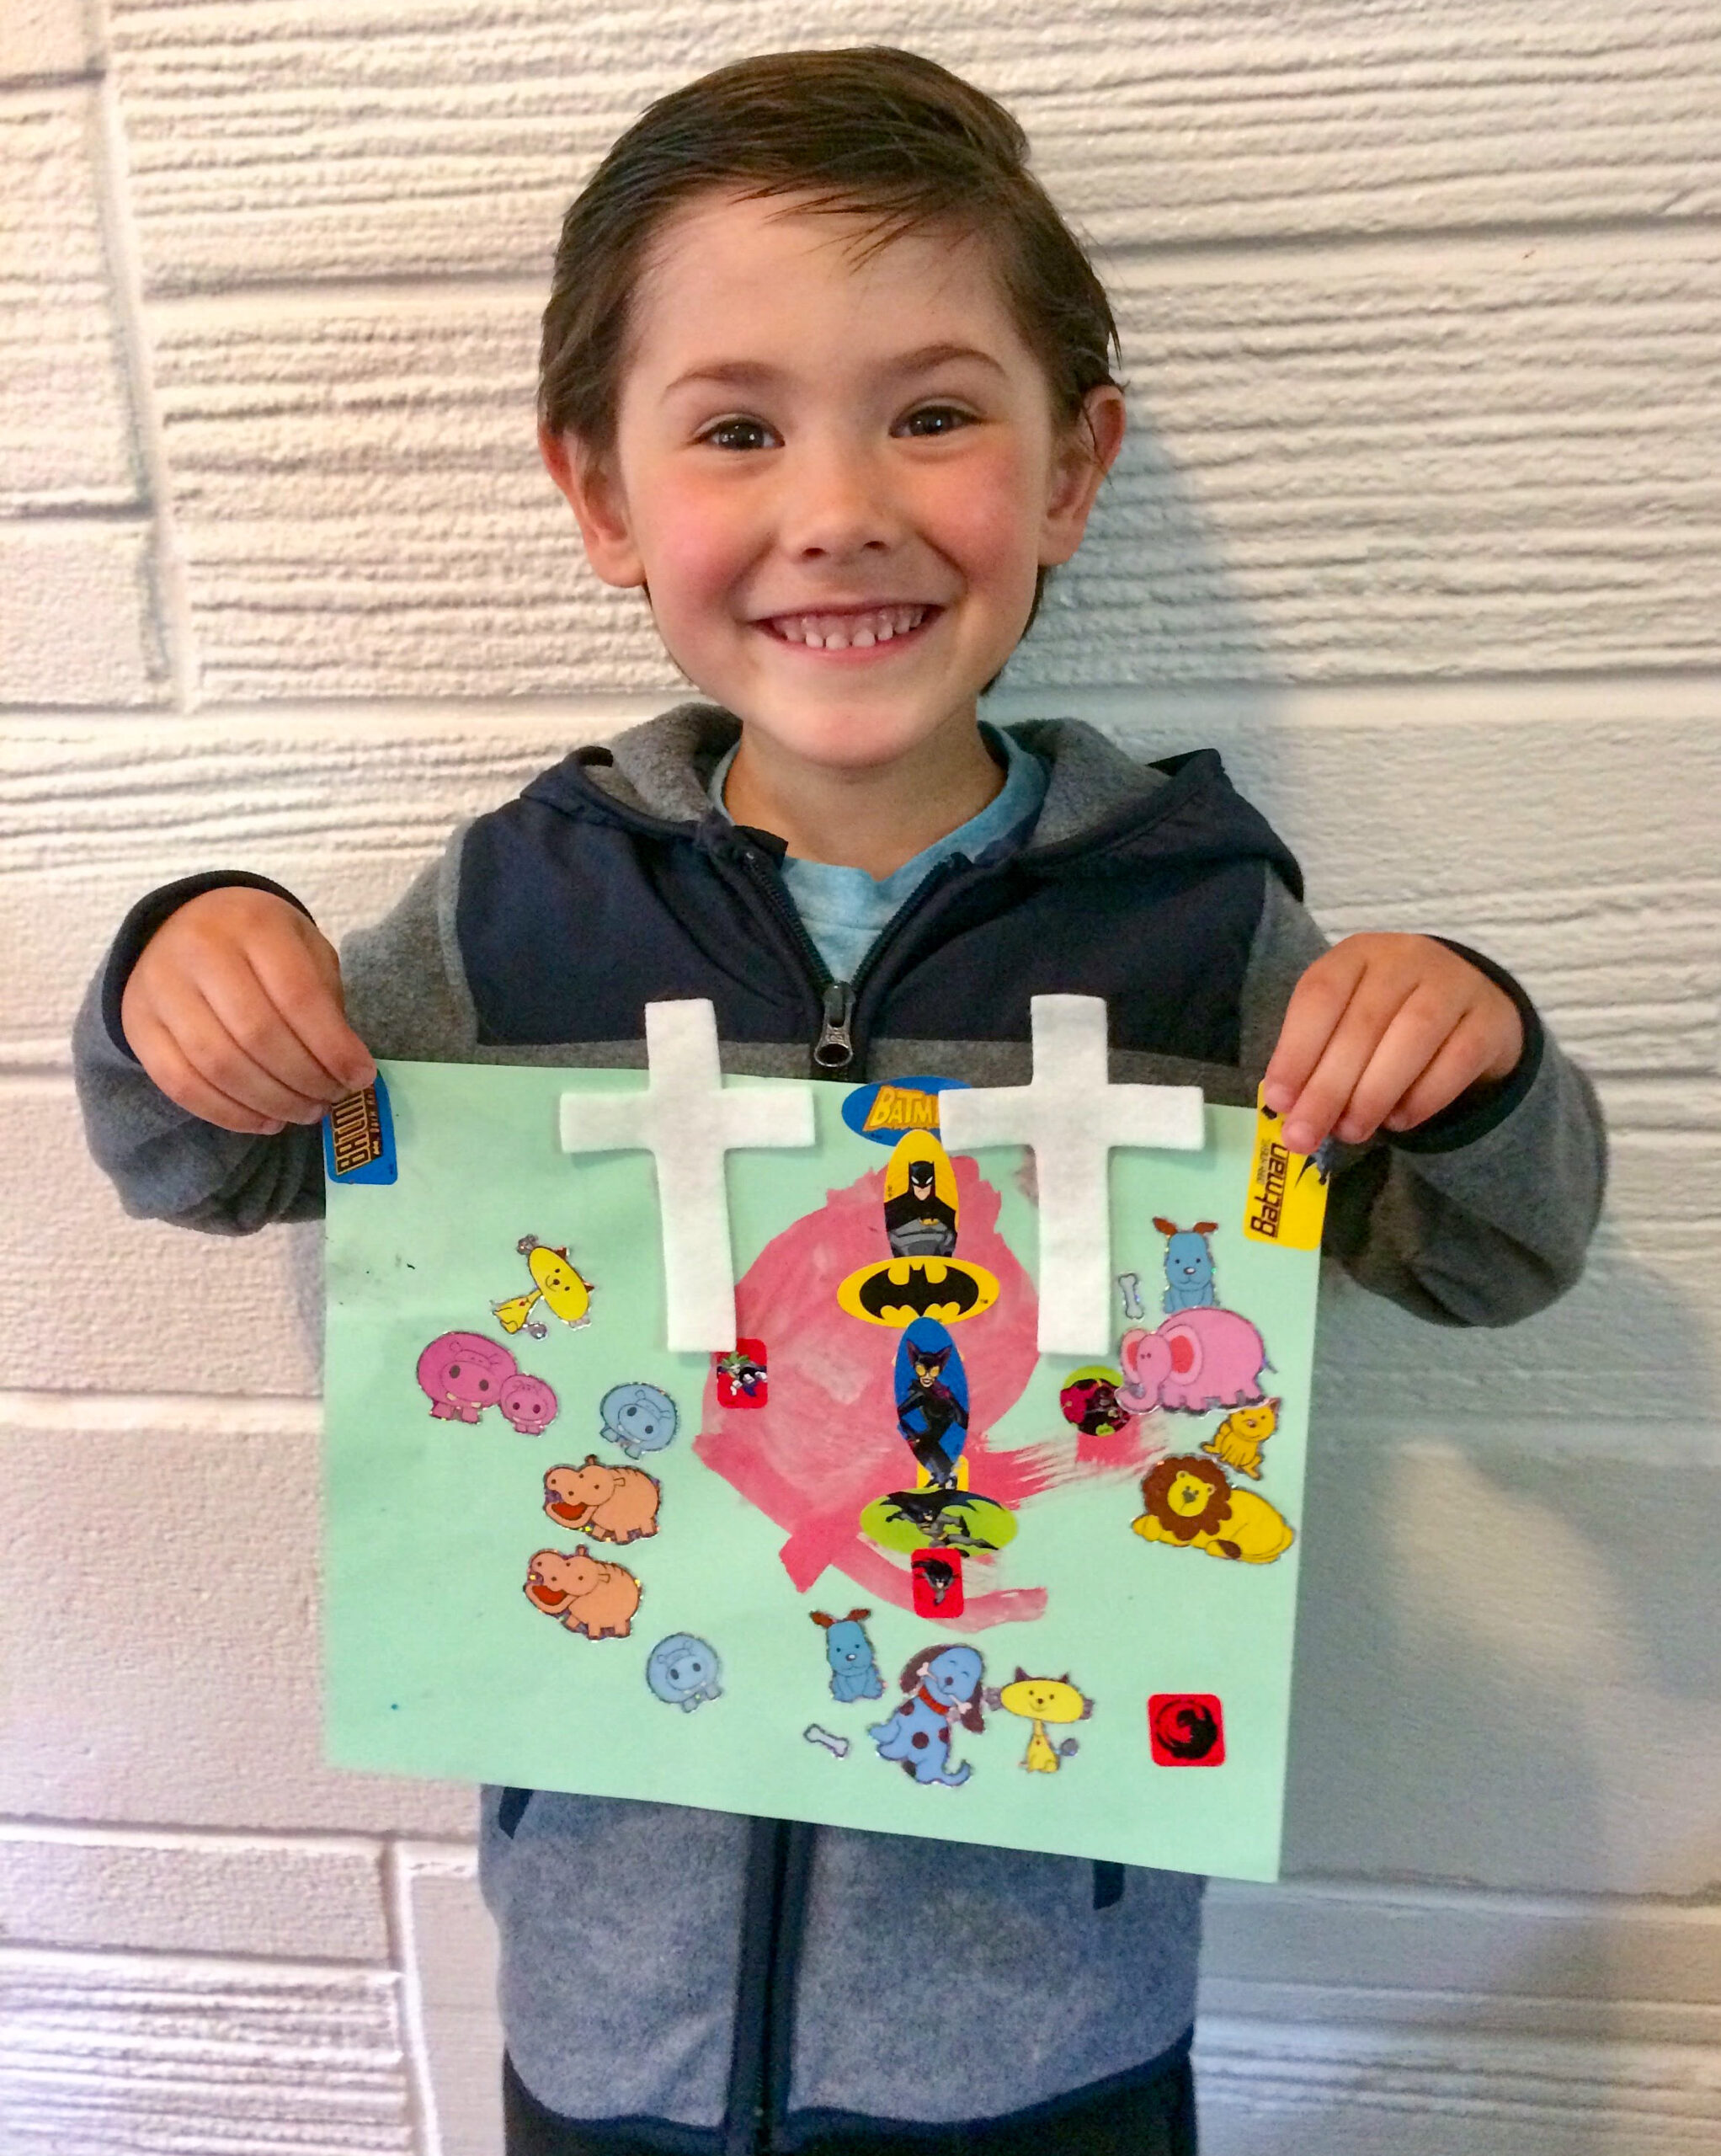 """Diocese of Evansville Deacon Tom Cervone sent us this photo of his grandson, Henry Gish, 4, with the poster he created for his bedroom during the COVID-19 stay-at-home restrictions. He shares the bedroom with his sister, Amerlia, 2. Deacon Tom told us, """"Henry told hismom and dad that theposter had to have Jesus, hippos, dogs and Batman. I love his mindset."""" Henry is a Pre-K student at Sts. Peter and St. Paul School in Haubstadt. He is the son of John and Nicole Gish; John teaches at Sts. Peter and St. Paul. Grandparents are Deacon Tom and Marie Cervone, and Mark and Jenny Gish. Well-done Henry! Submitted photo courtesy of Deacon Tom Cervone"""